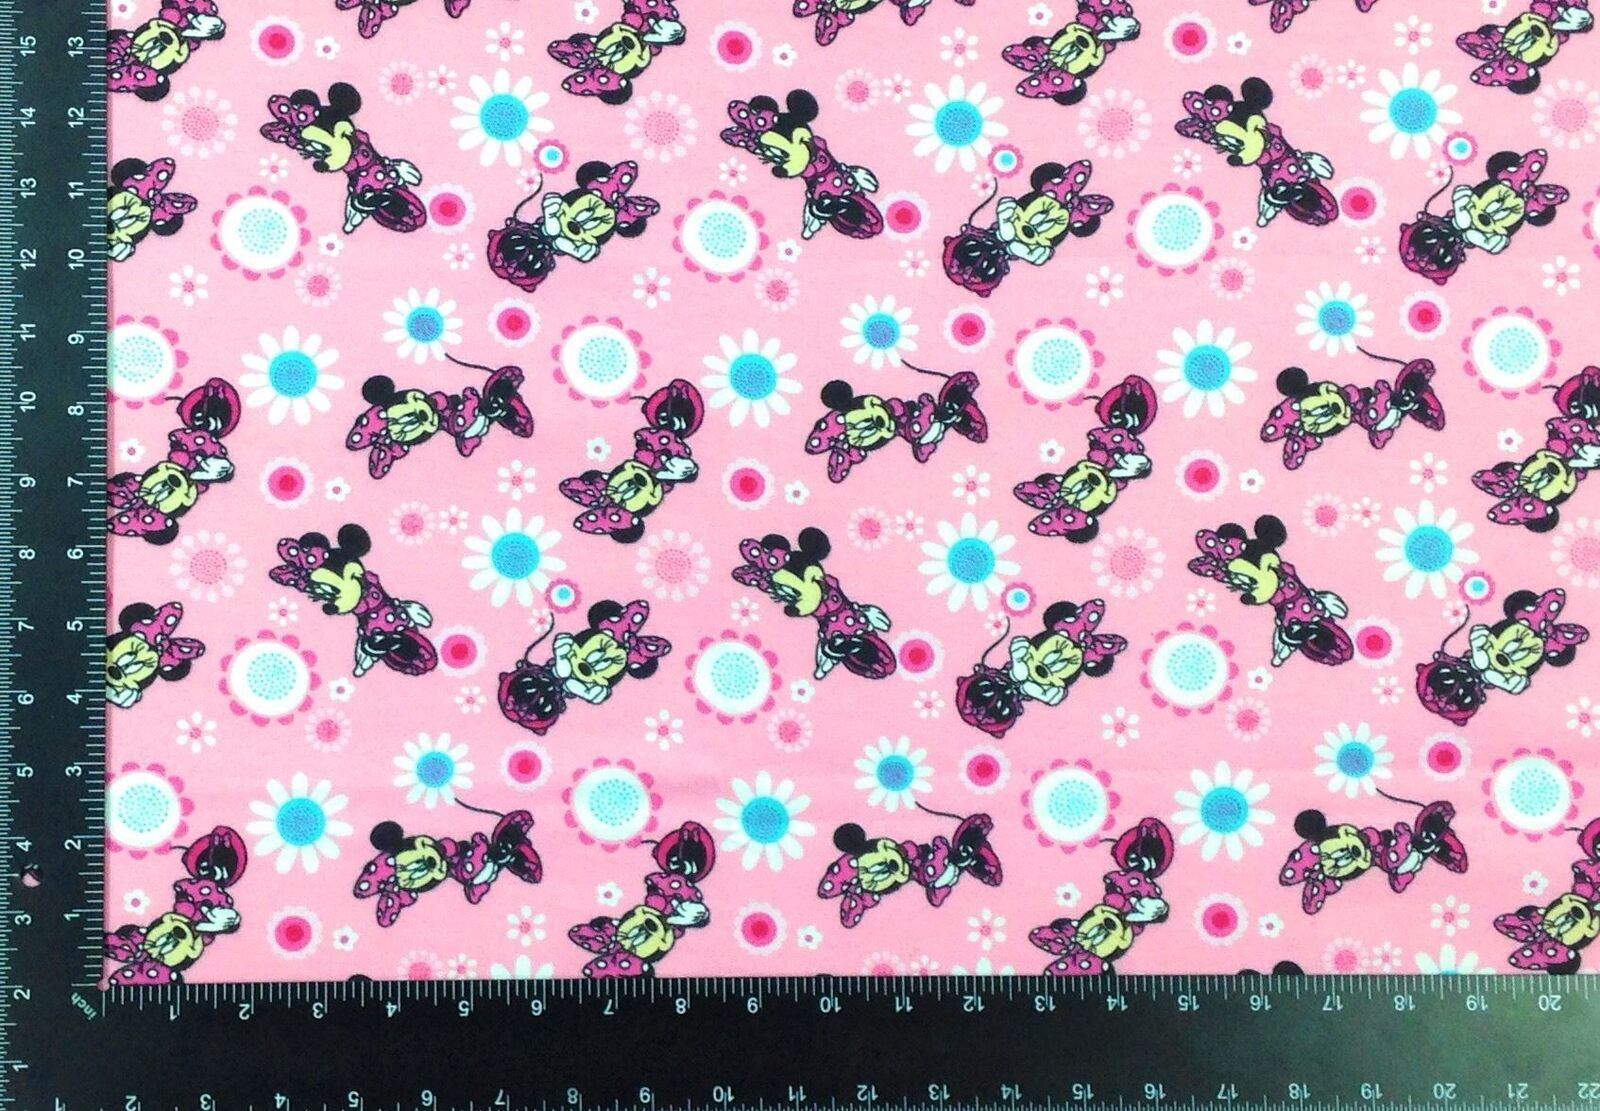 Minnie Mouse Winceyette 100% Brushed Cotton Fabric Material 3 Sizes